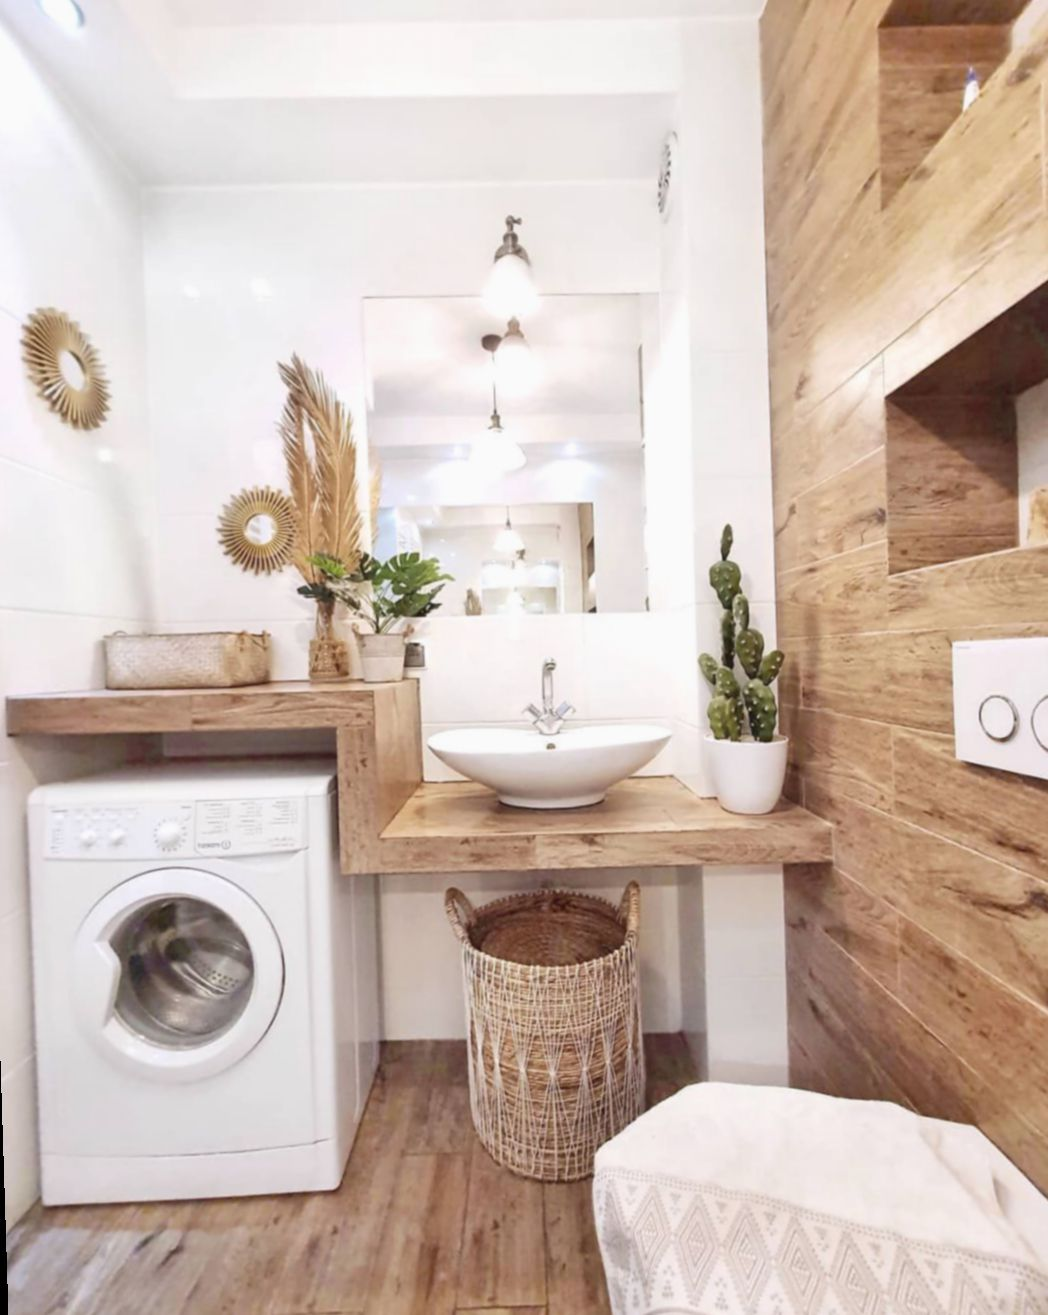 Wooden Bathroom Laundry Rooms This Listing Is For A Set Of 4 Signs Details Listed Below Laundry Room Design Interior Design Living Room Beautiful Bathrooms